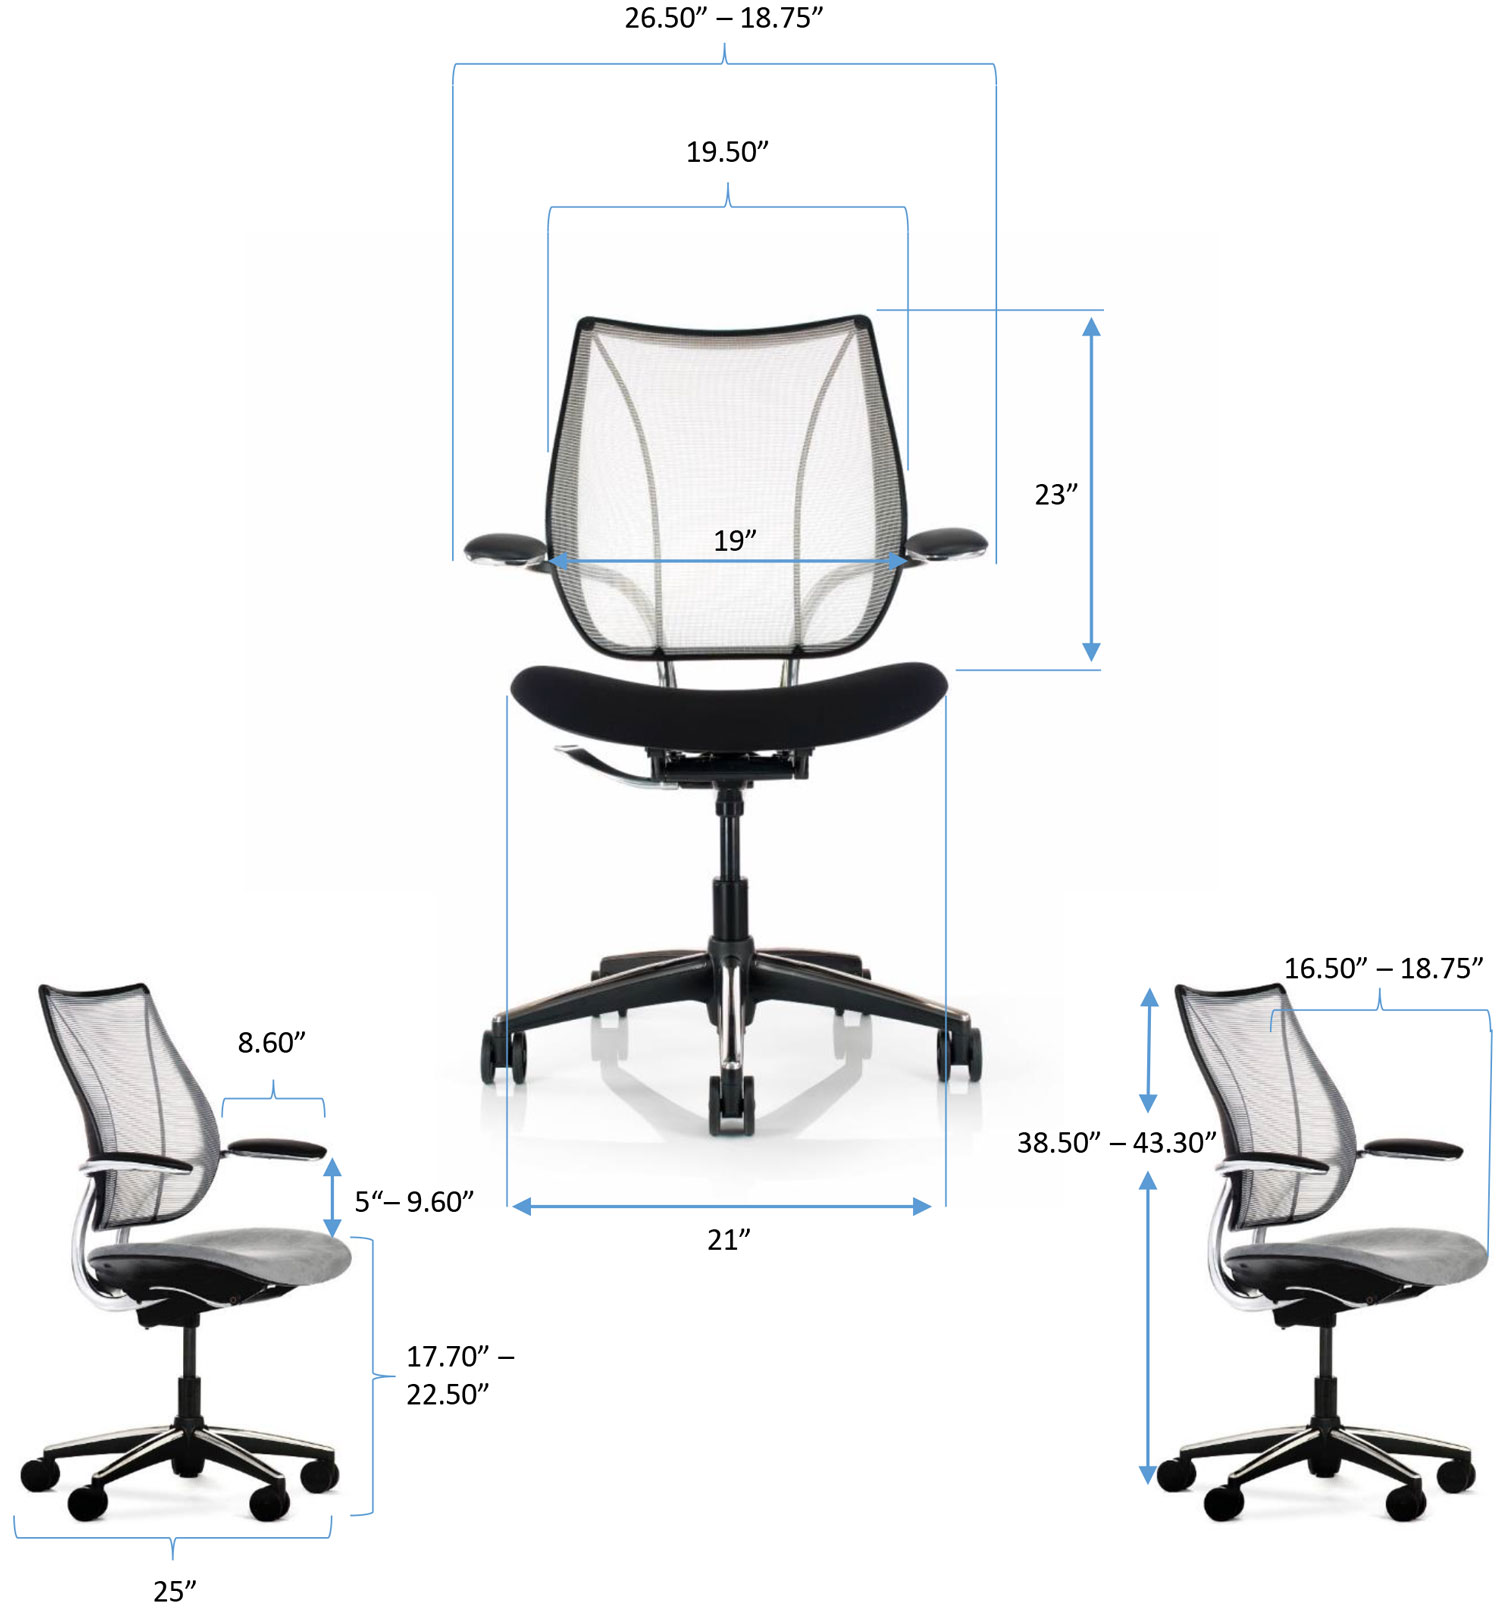 Liberty Chair Specs